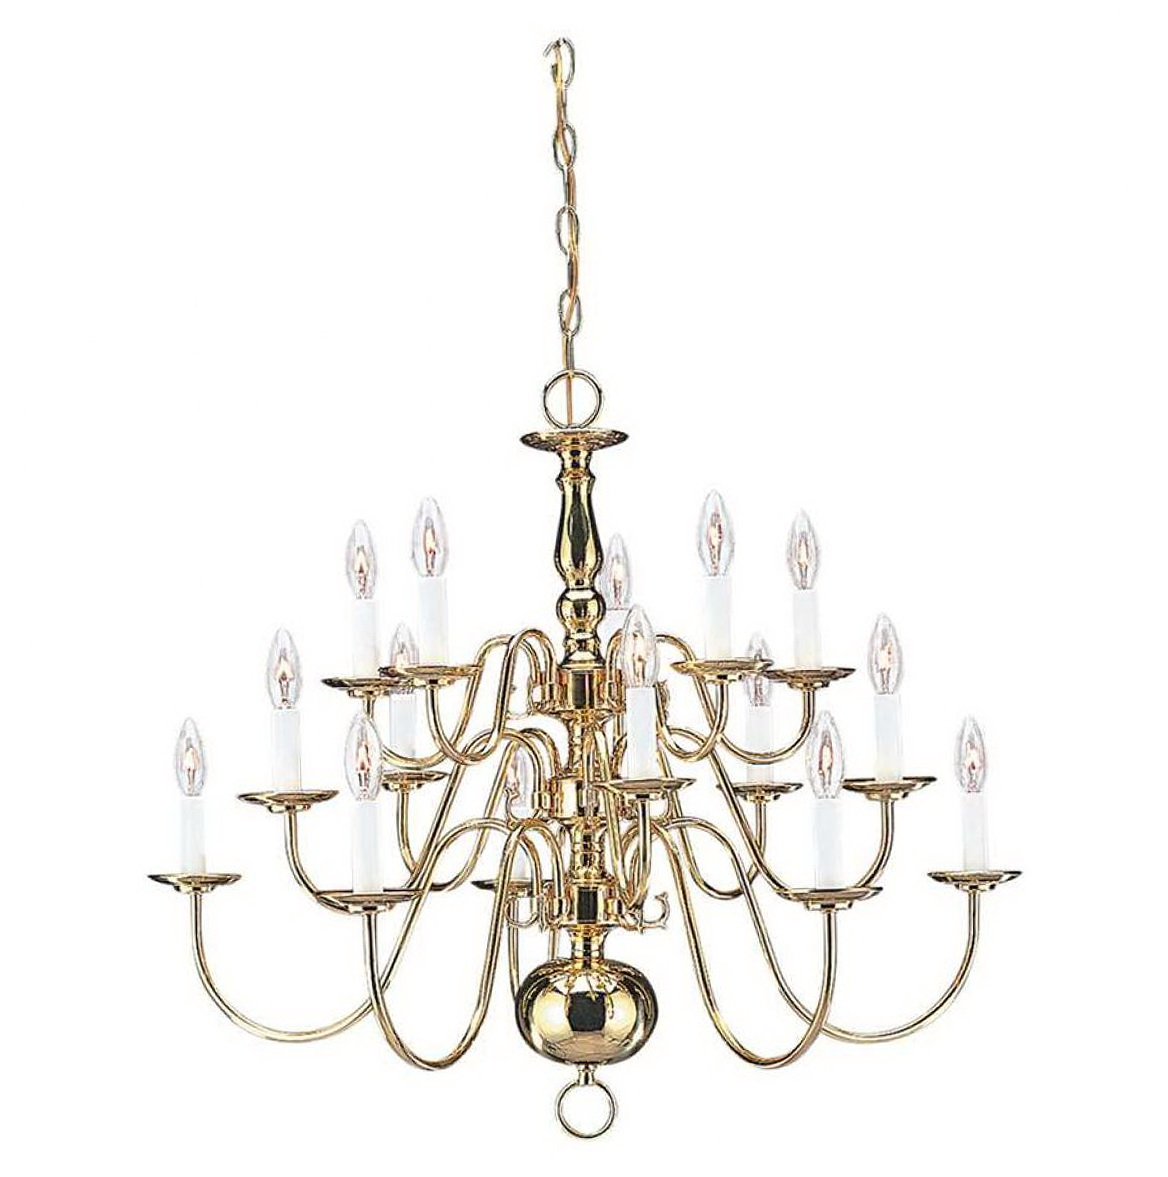 Traditional Polished Brass Chandeliers